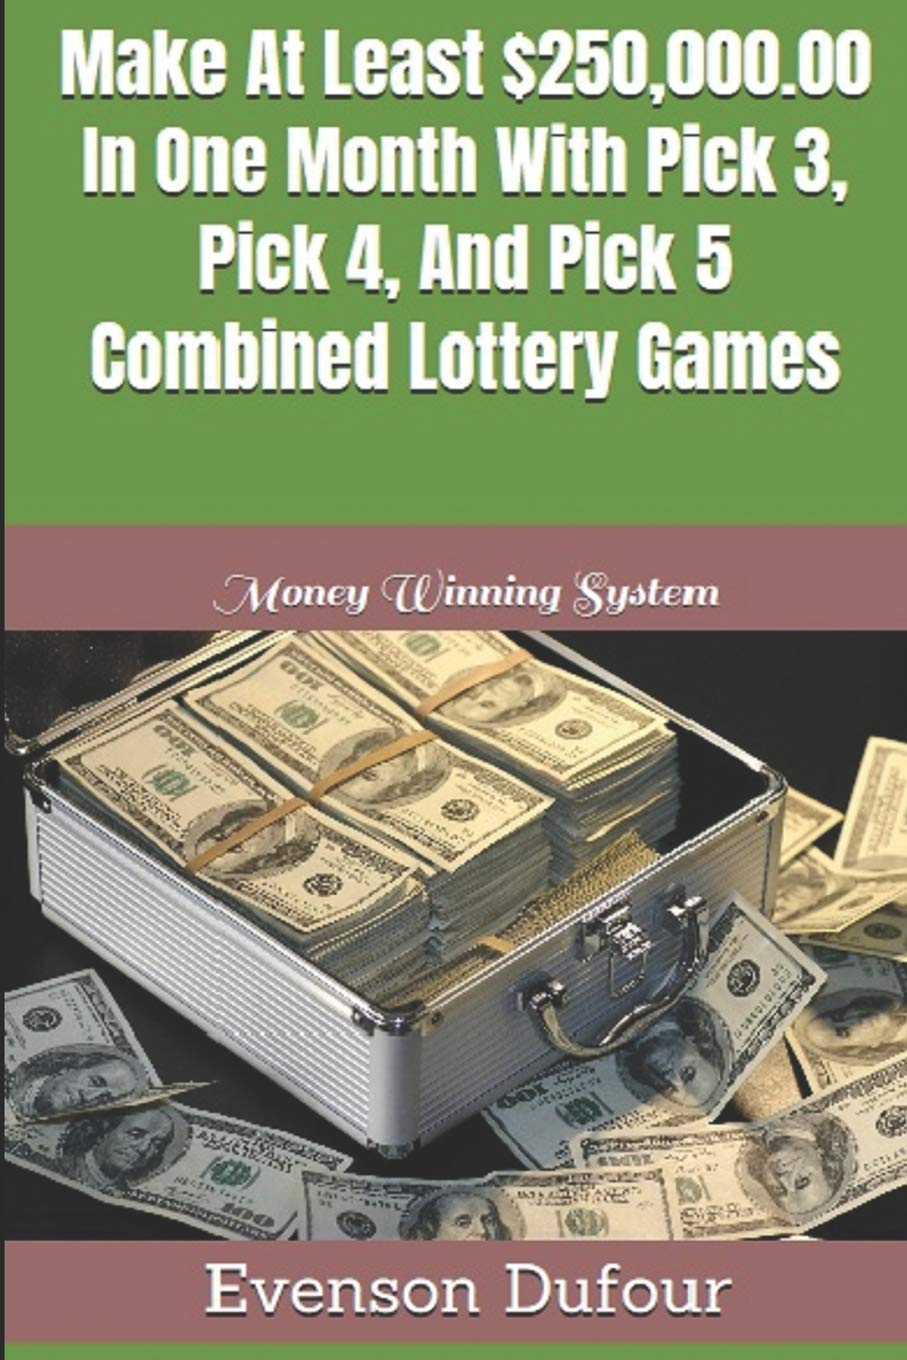 Make At Least $250, 000 00 In One Month With Pick 3, Pick 4